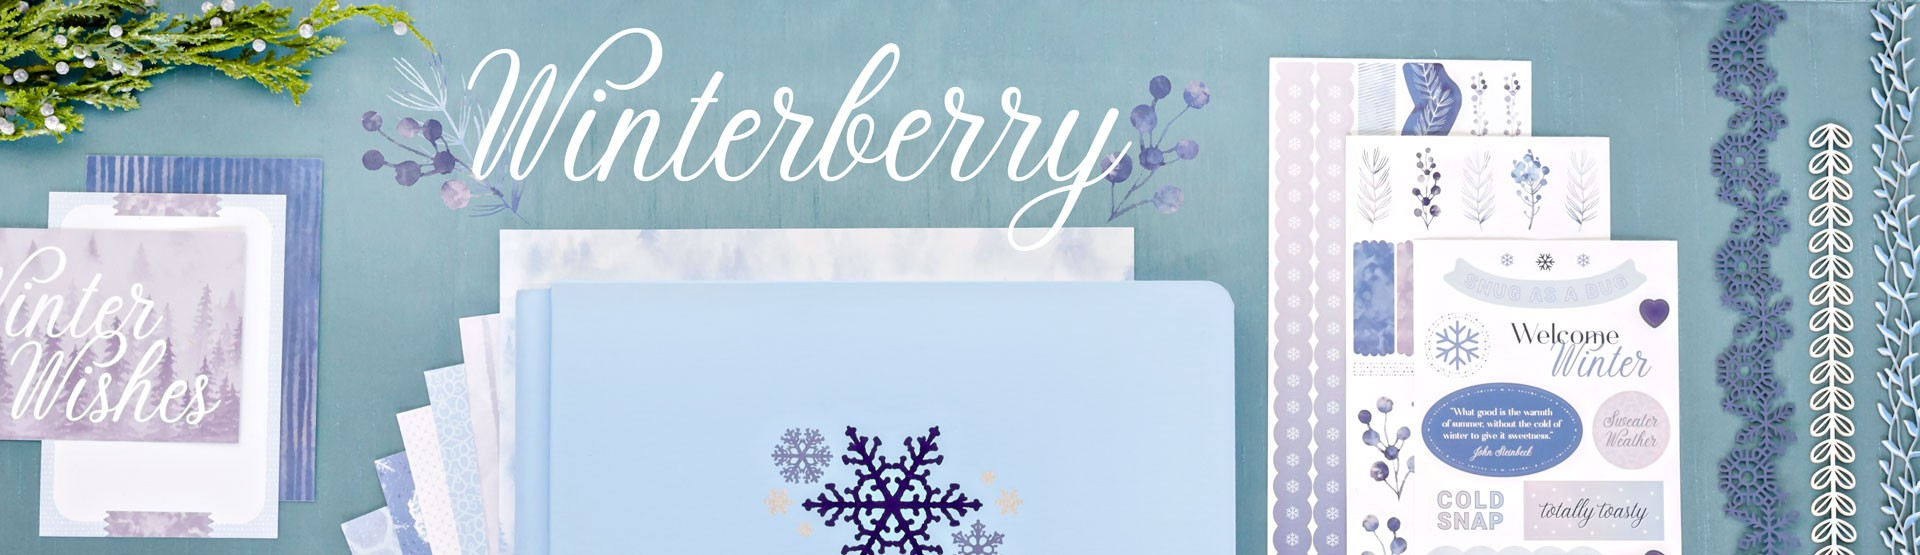 Winter & Cold Weather: Winterberry